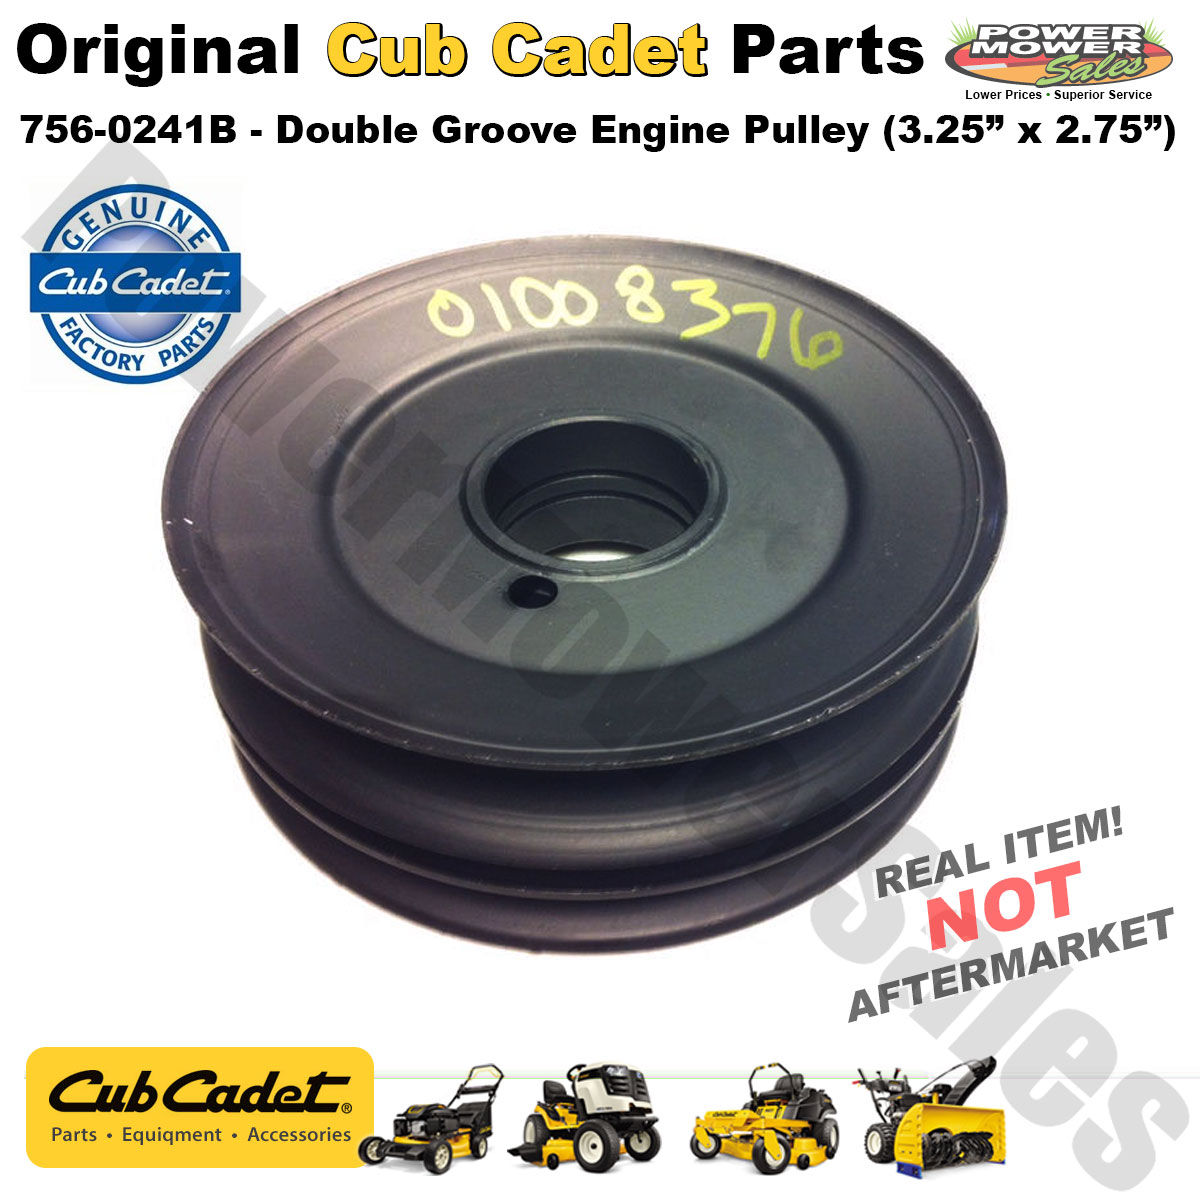 hight resolution of cub cadet mtd snow blower thrower double groove engine pulley 756 0241b 1824049 706 15931 01 756 0241 gw 1824049